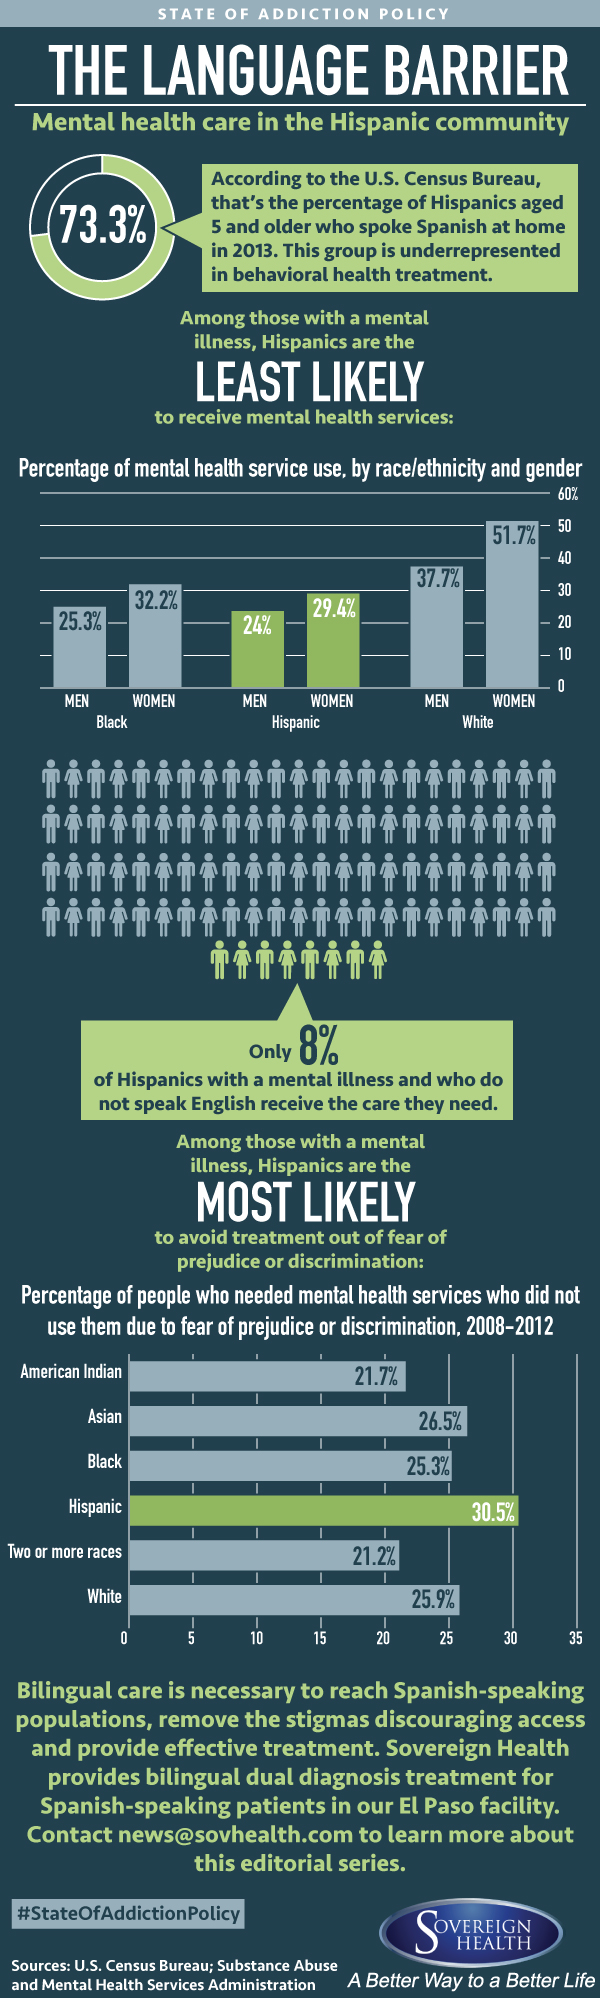 State of Addiction Policy: Behavioral health care challenges in the Hispanic community